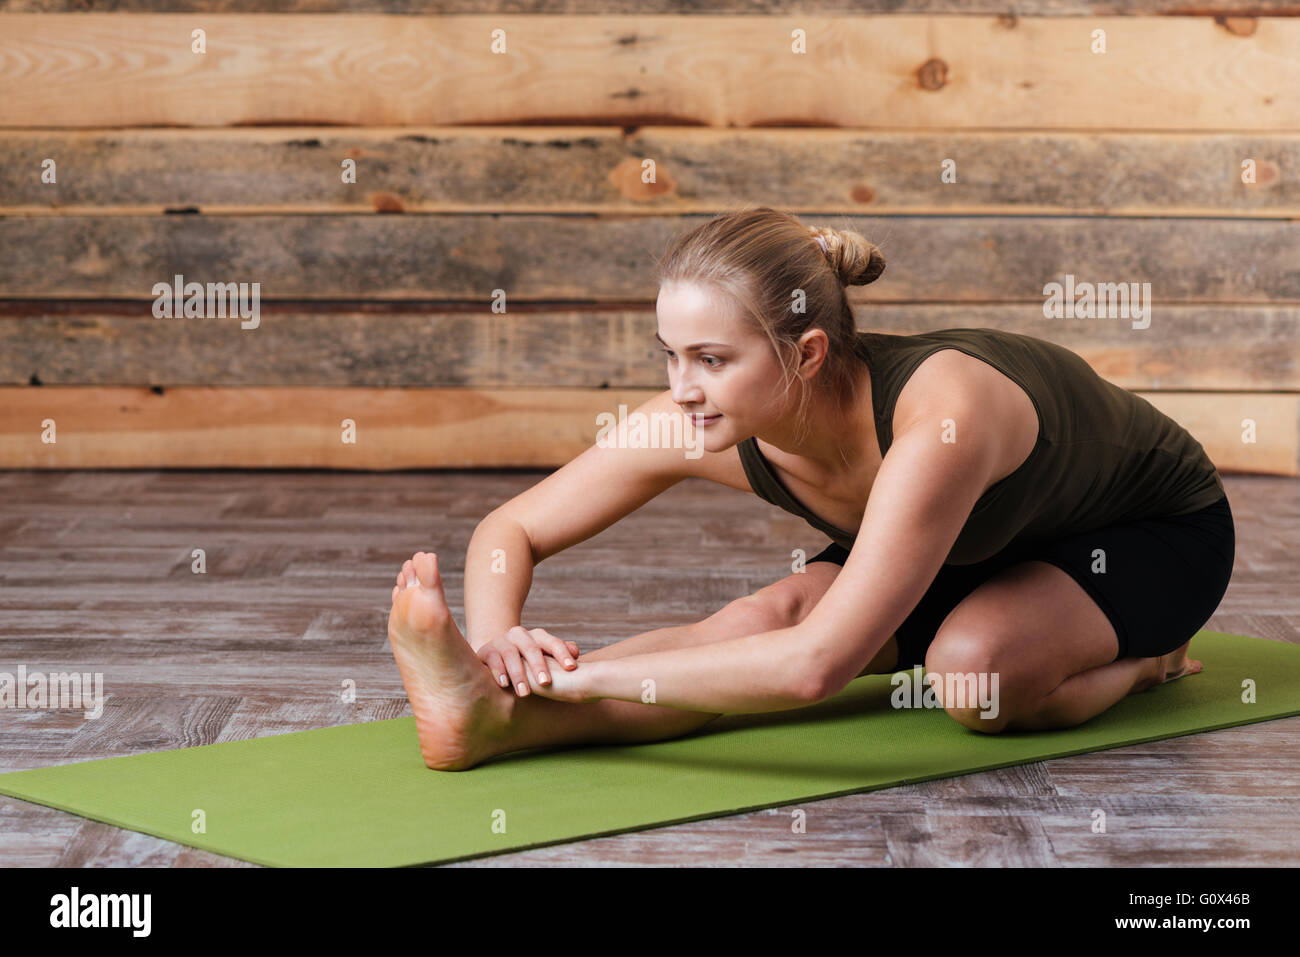 Woman doing yoga exercises on yoga mat Photo Stock